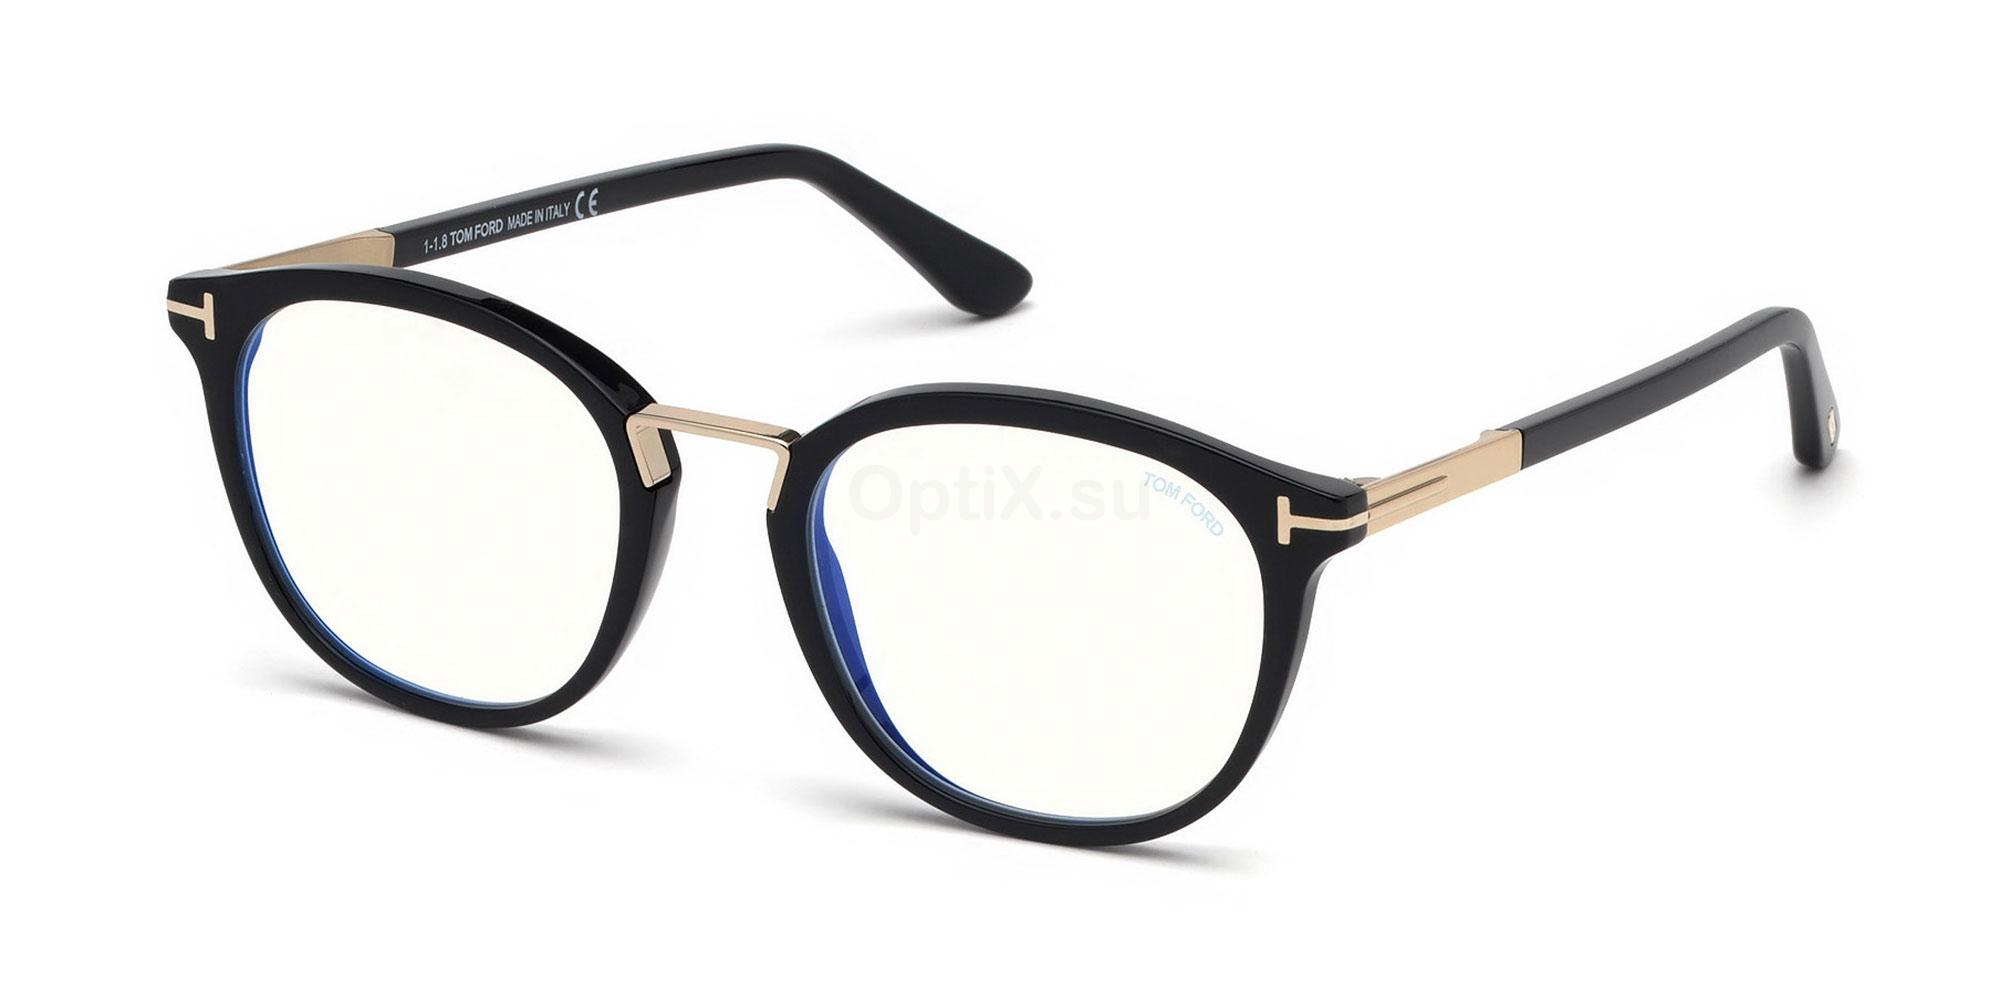 001 FT5555-B Glasses, Tom Ford